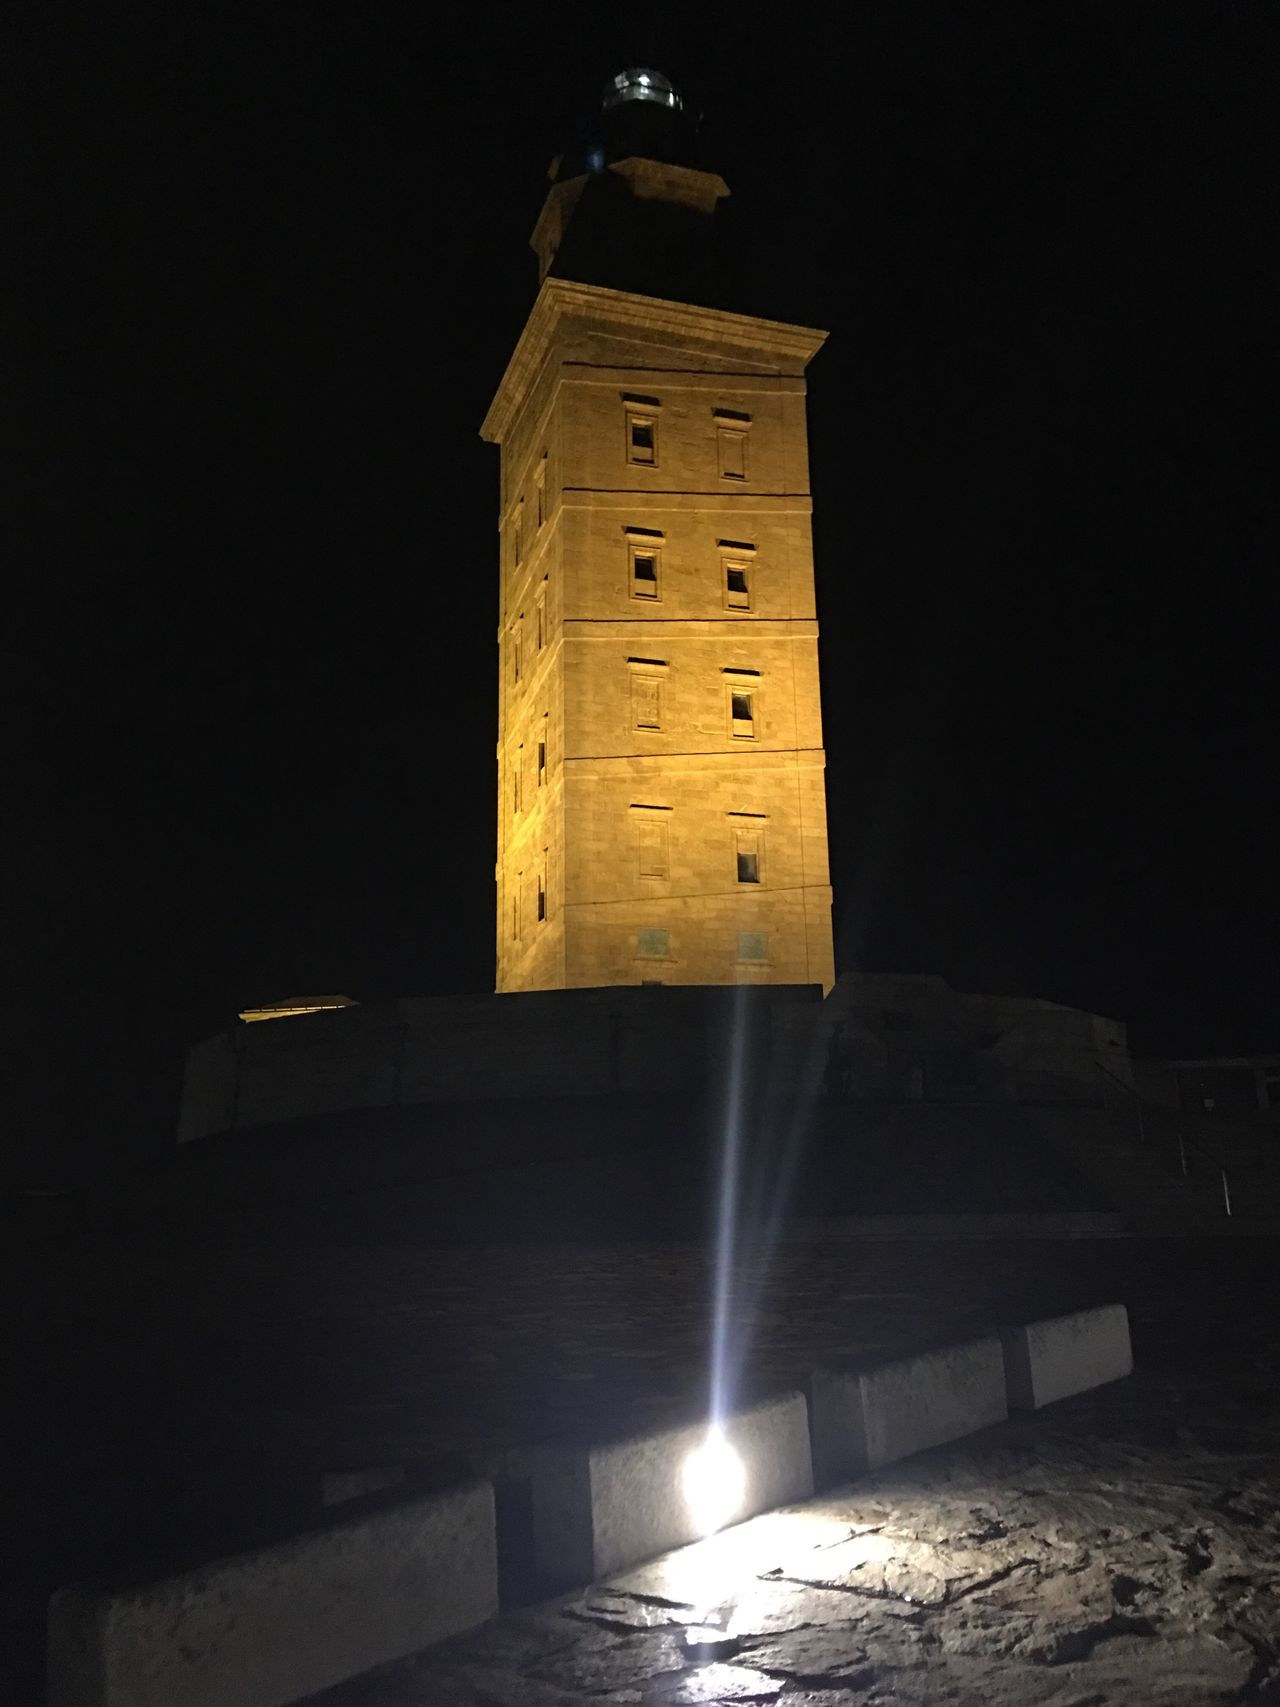 Night Illuminated Built Structure Architecture Building Exterior No People Outdoors TorreDeHercules Lacoruña Acoruña A Coruña City